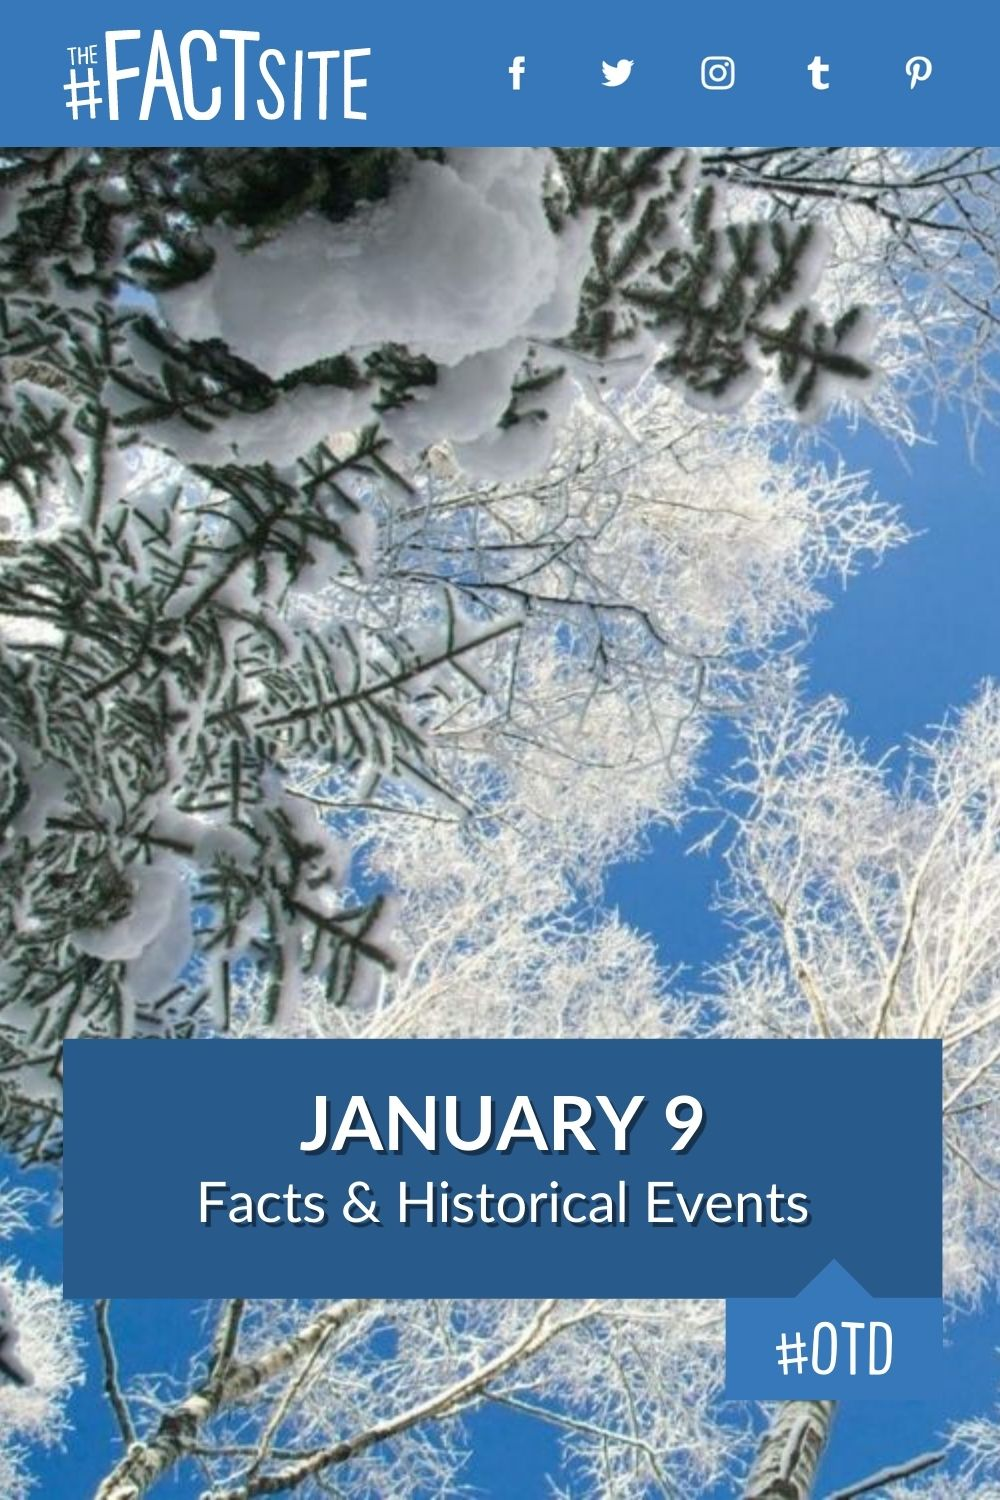 Facts & Historic Events That Happened on January 9